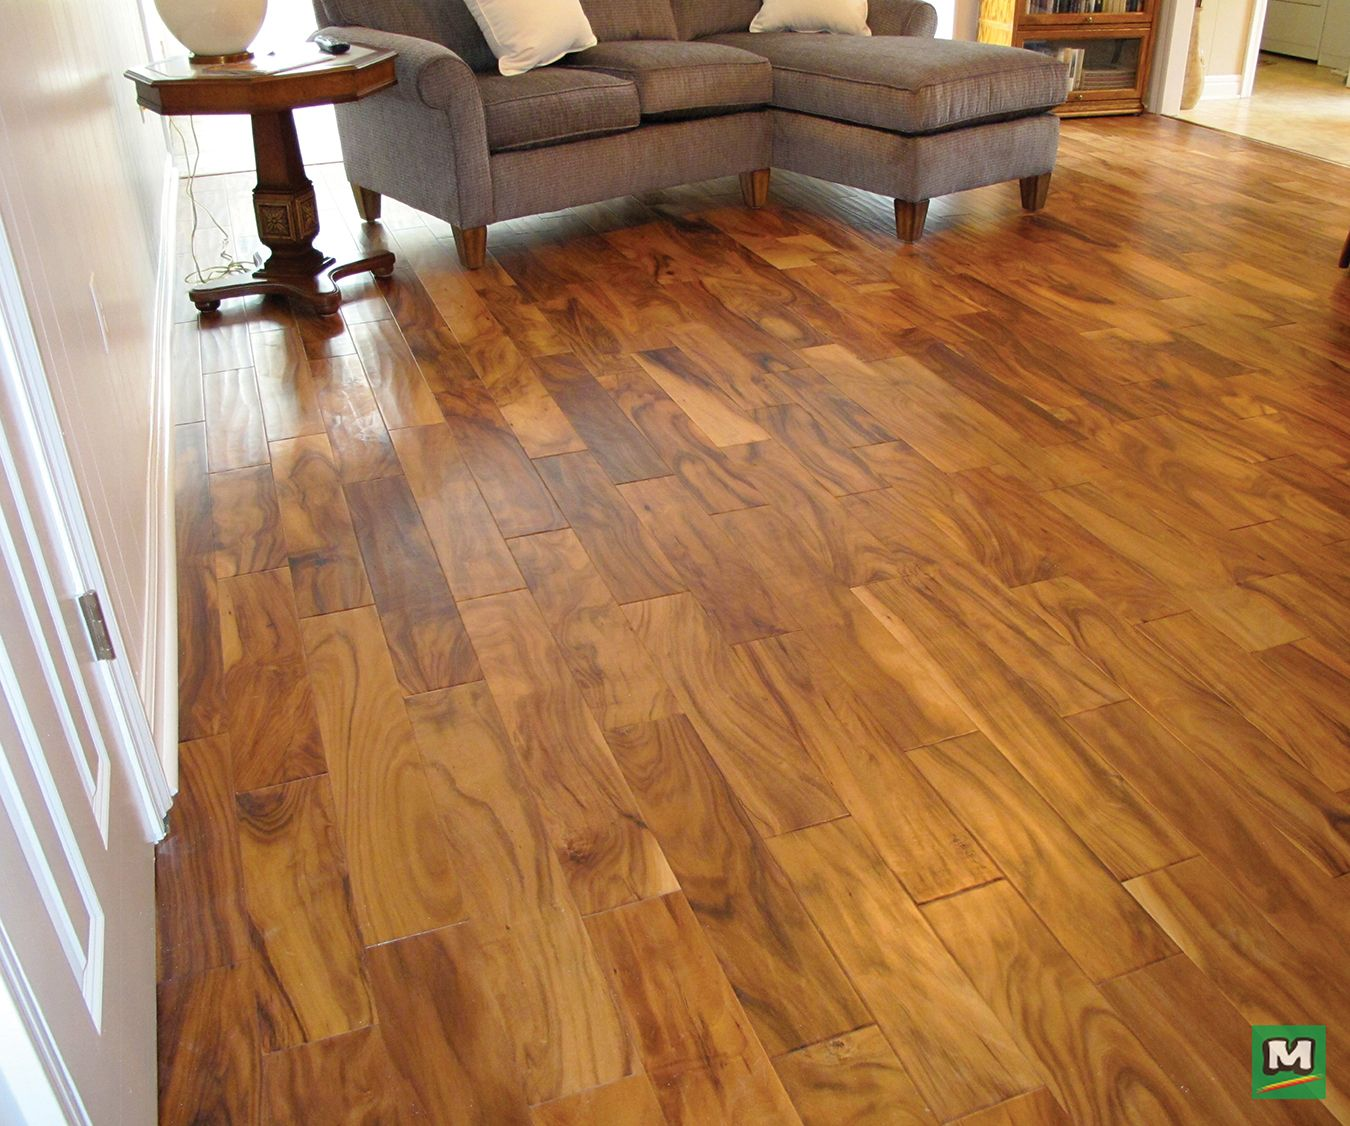 Transform Any Room In An Afternoon With Floors Of Distinction